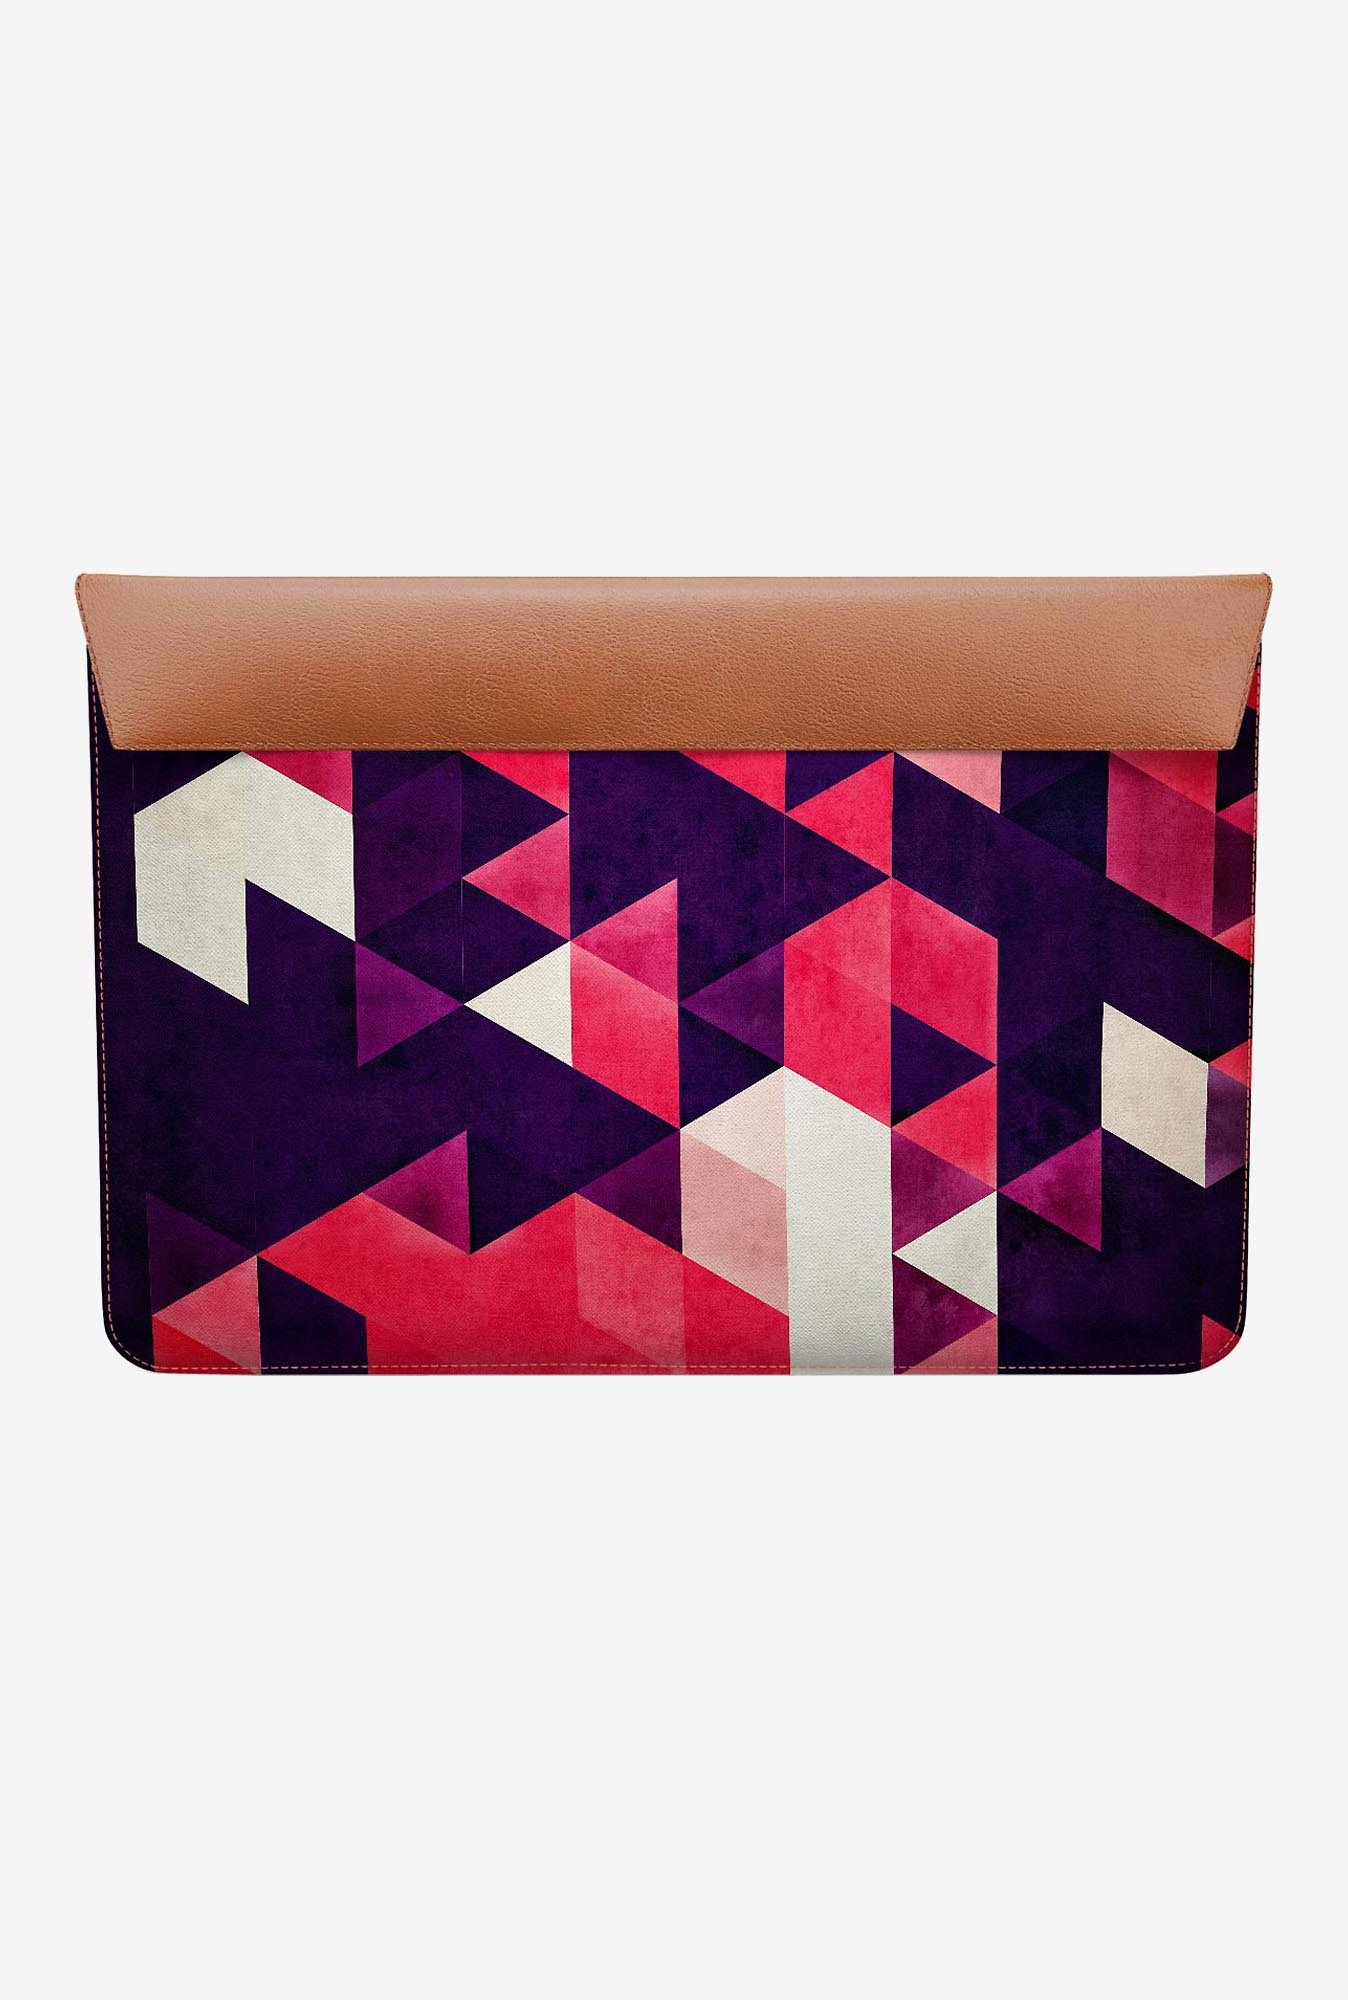 DailyObjects cyrysse lydy MacBook Air 11 Envelope Sleeve